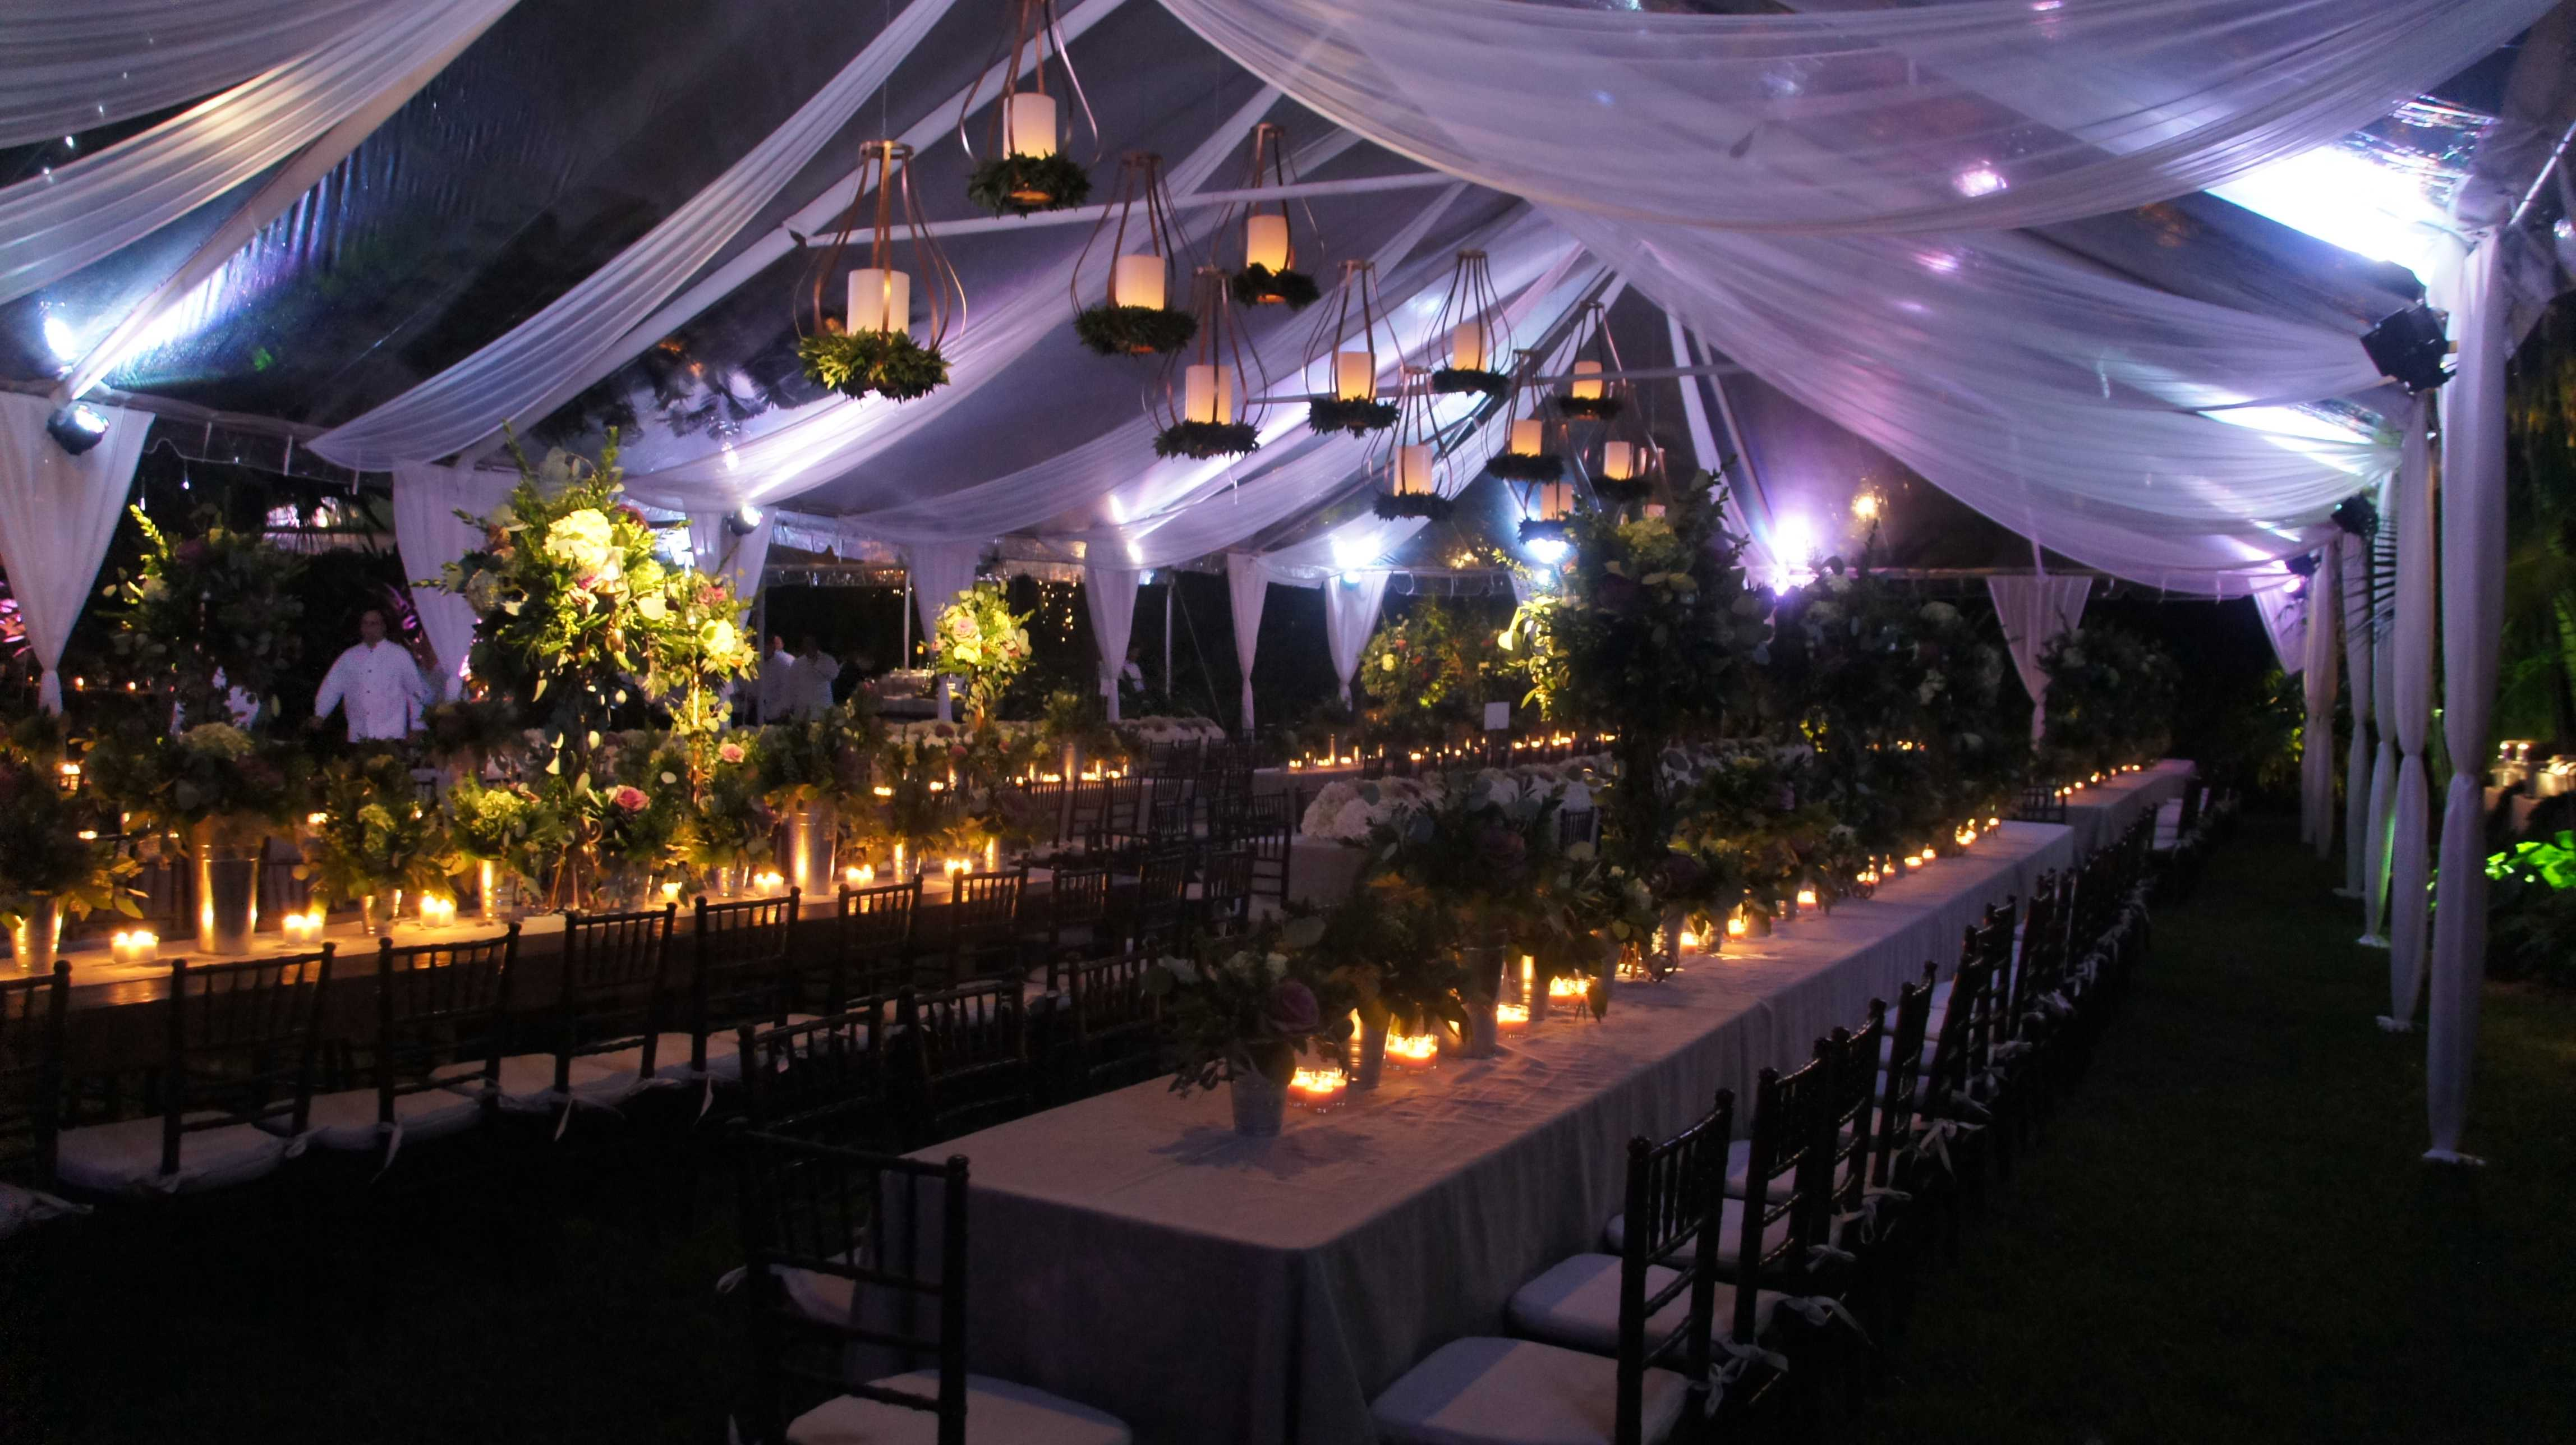 You Can Augment The Candlelight With Tent Wash Lights On Sides And Candelabras In Middle But Do Pure Candle Light If Want